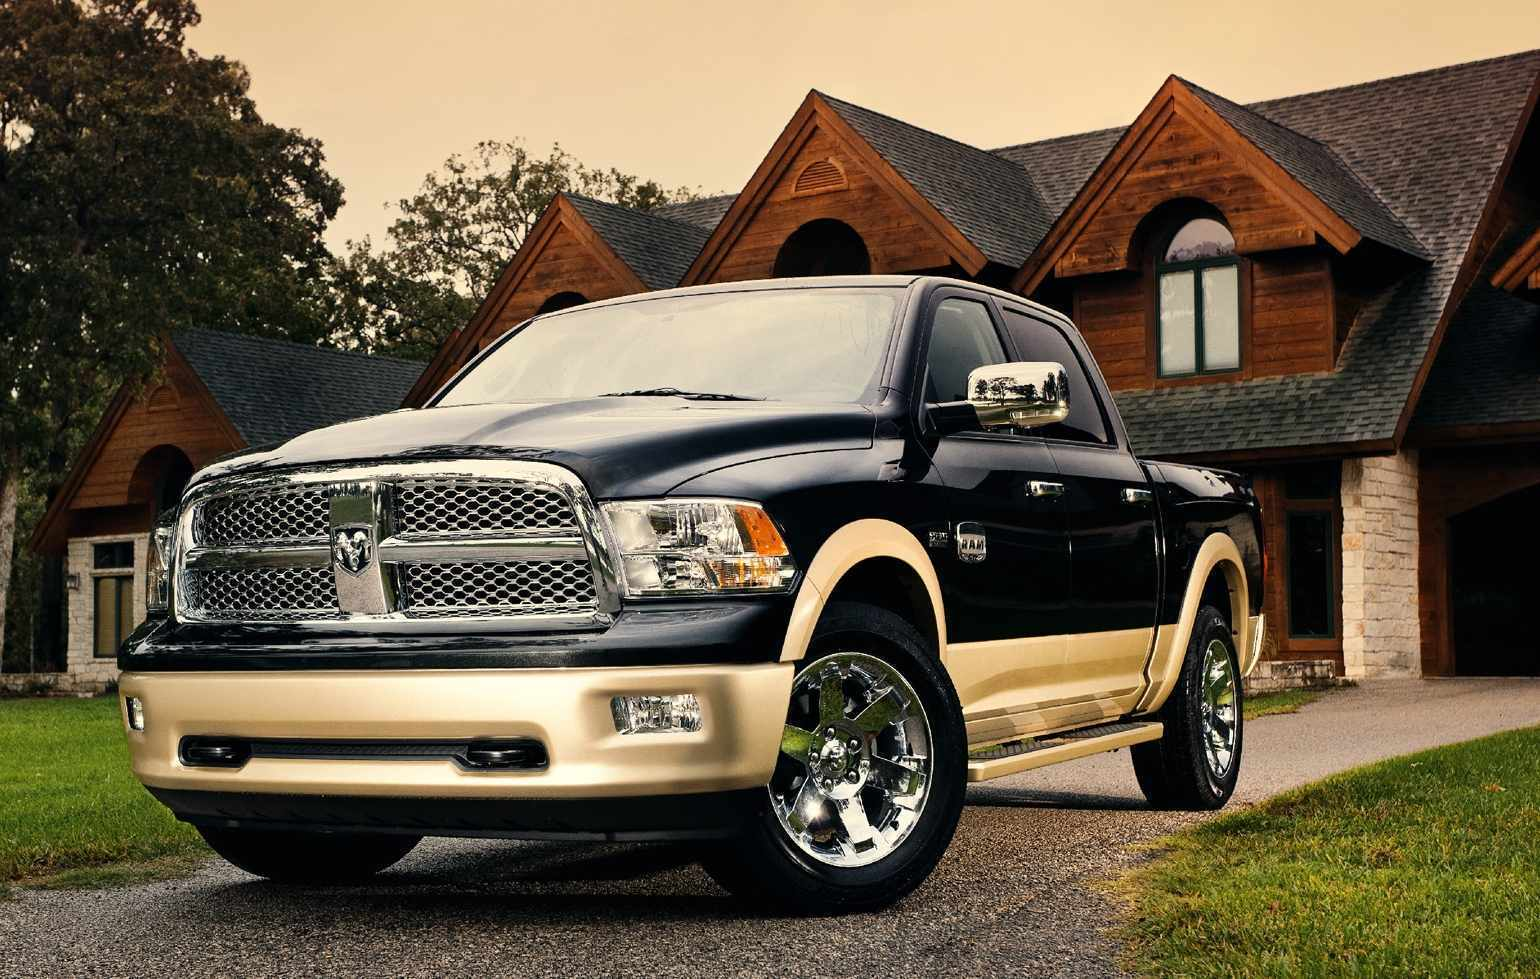 Primary image for 2013 RAM 1500 LARAMIE CREW CAB POSTER | 24 x 36 INCH | DODGE | TRUCK | MAN CAVE